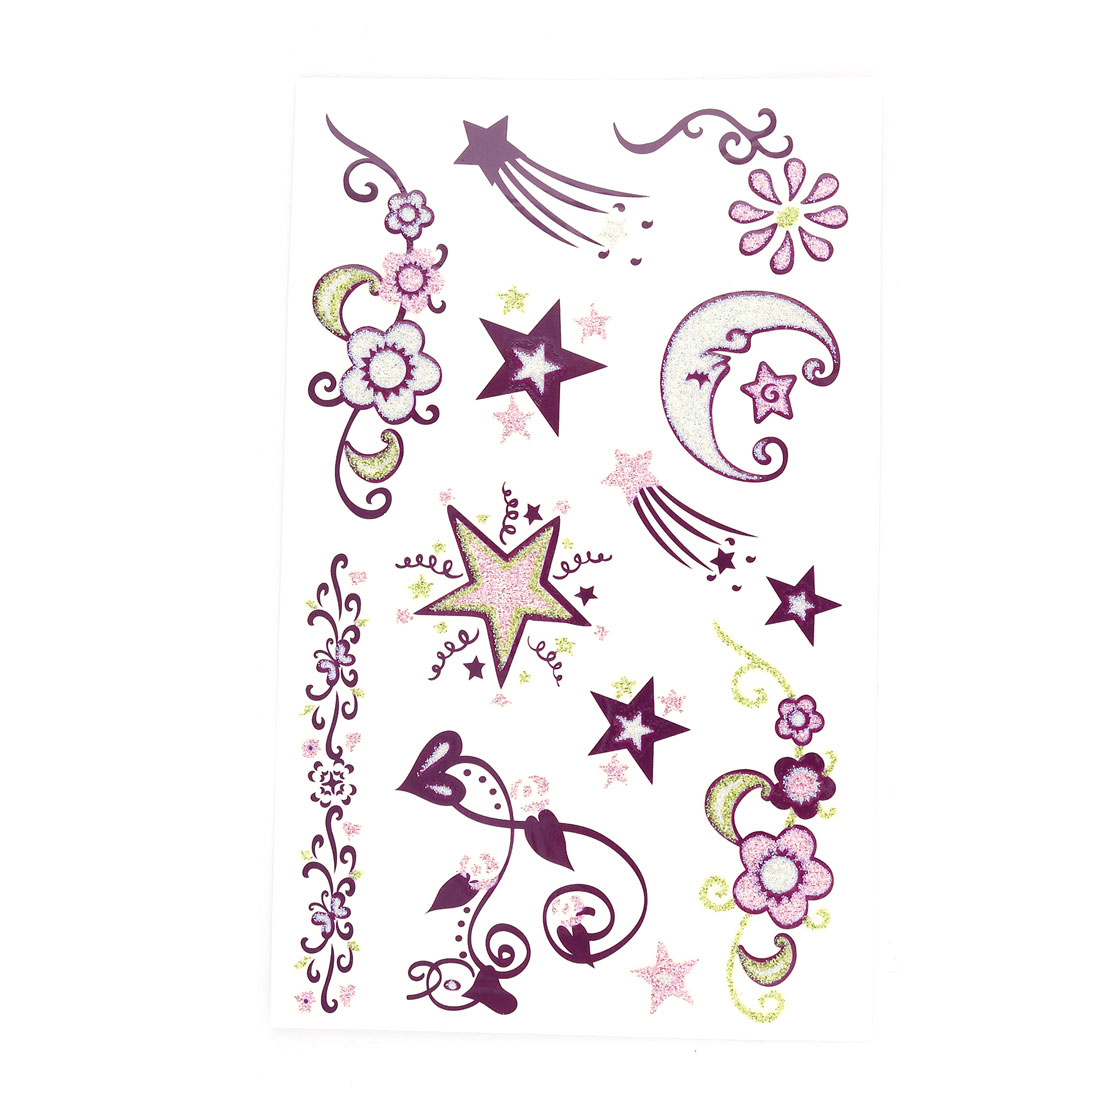 Lady Flower Moon Star Pattern Body Art Paper Sticker Decal Temporary Tattoo Sheet